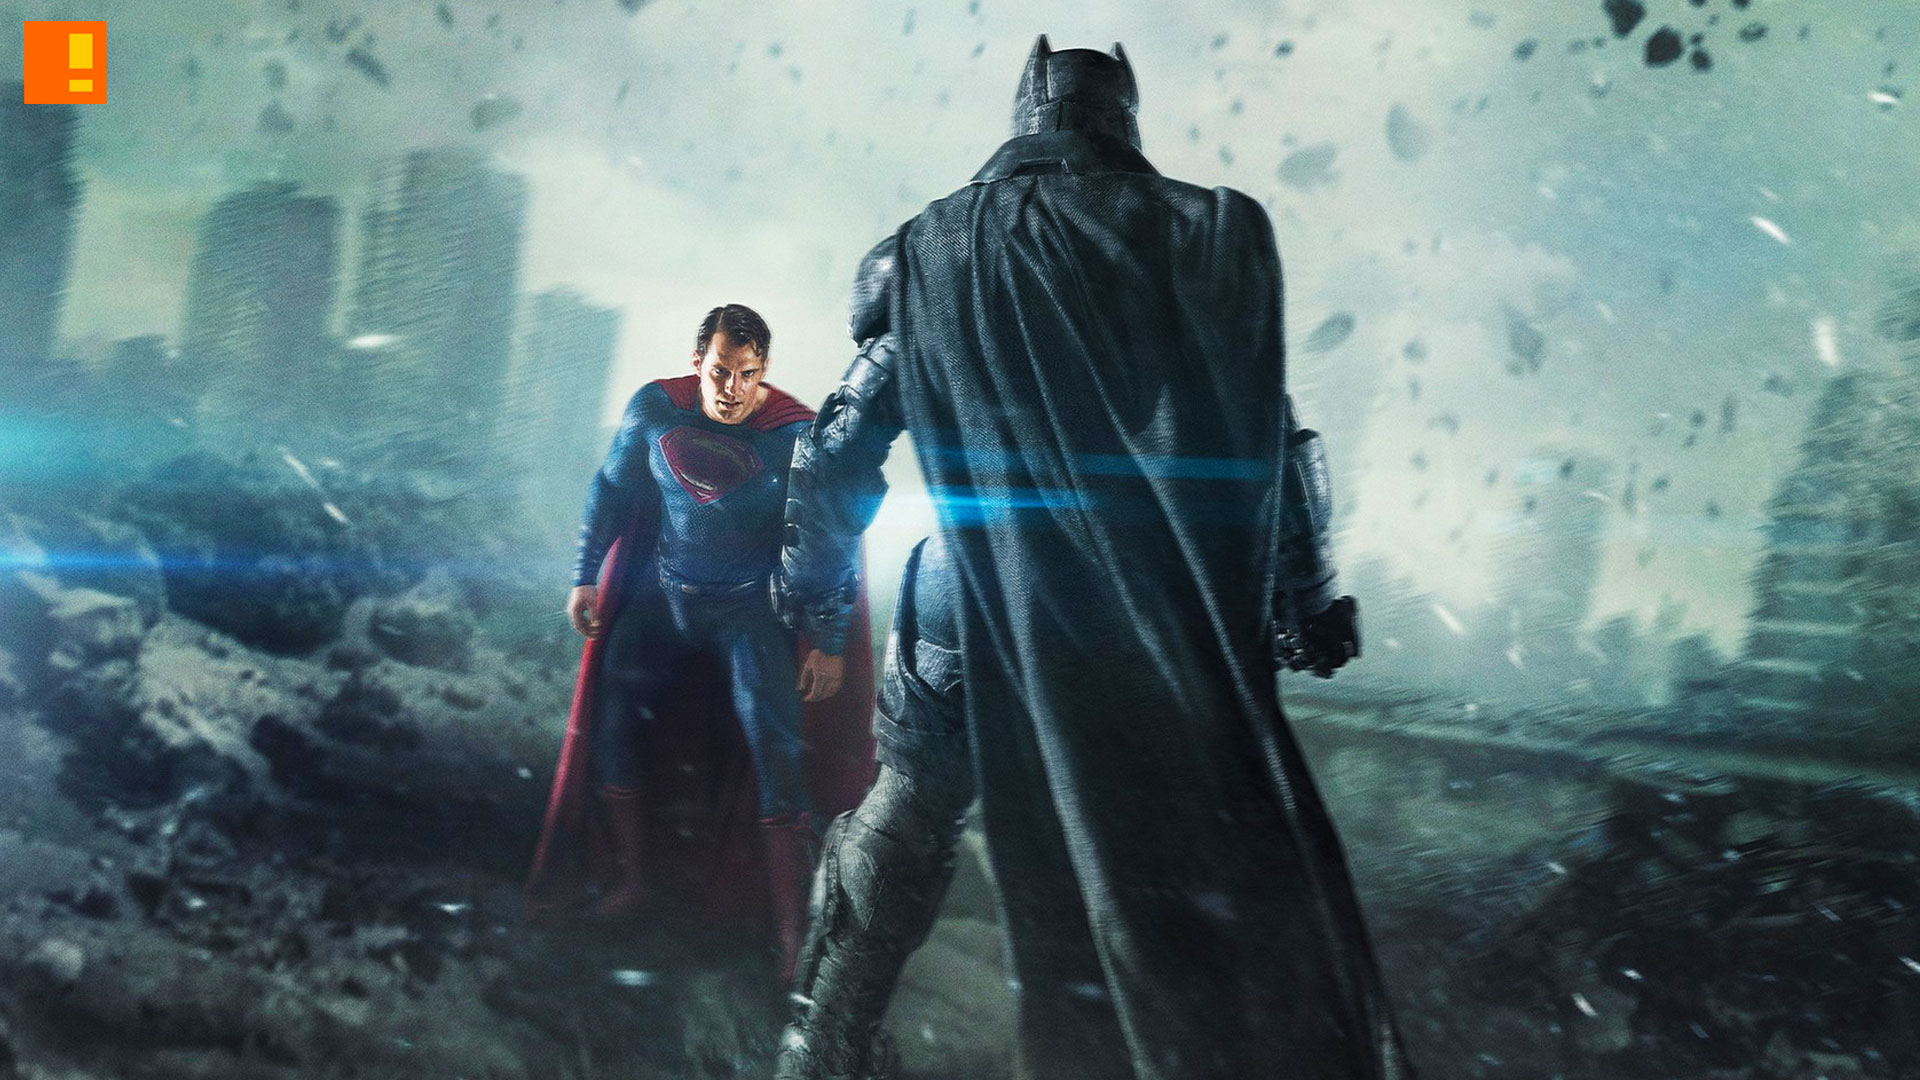 imax poster. batman vs superman: dawn of justice. the action pixel. dc comics. entertainment on tap. warner bros. pictures. @theactionpixel